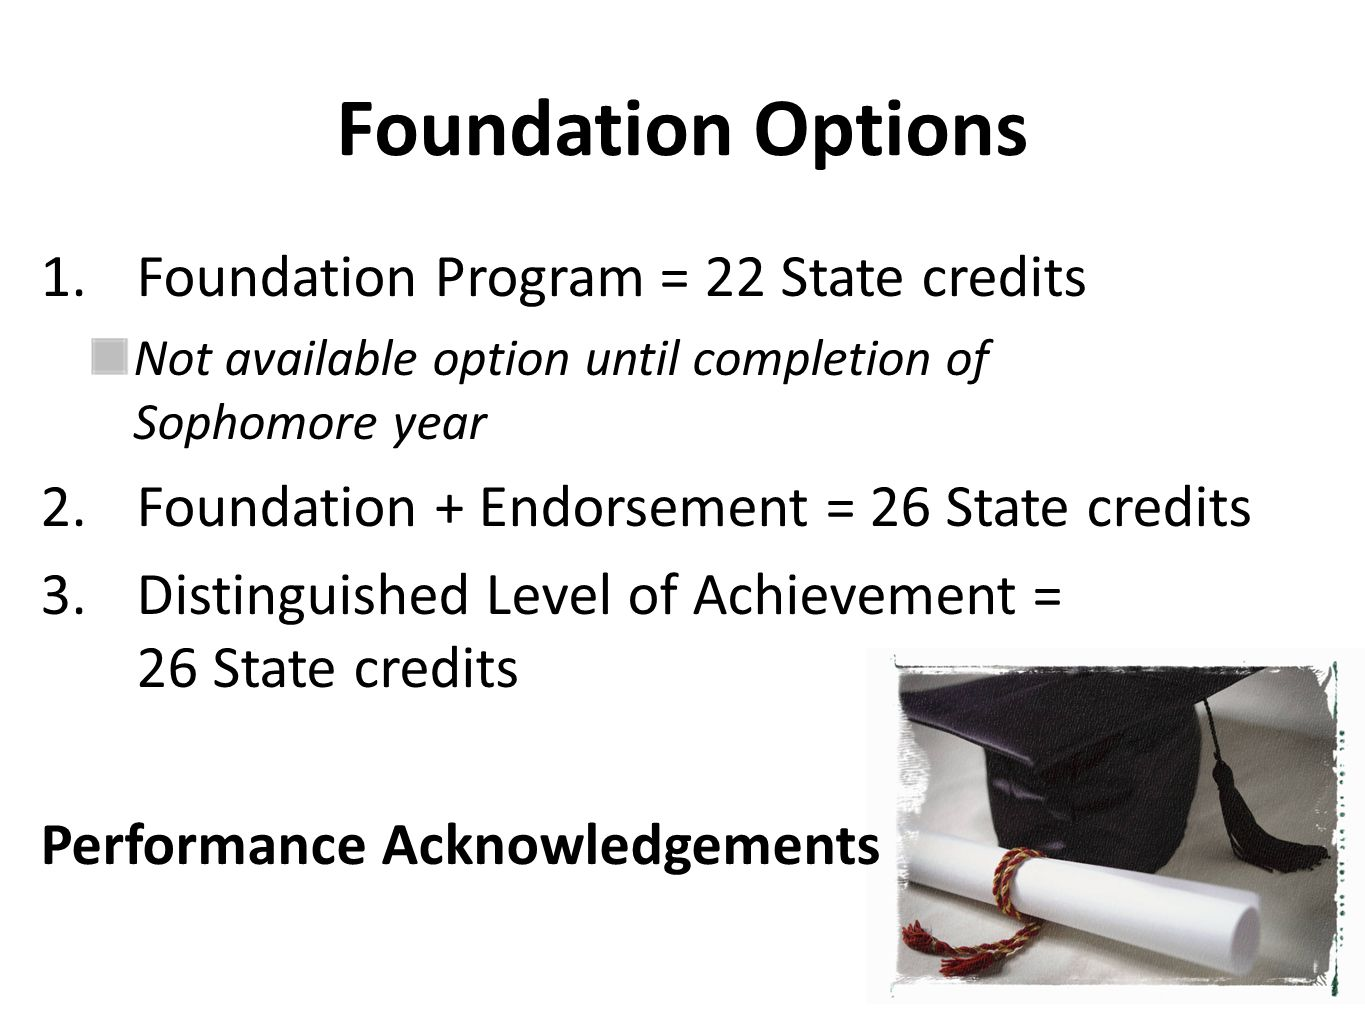 Foundation Options 1.Foundation Program = 22 State credits Not available option until completion of Sophomore year 2.Foundation + Endorsement = 26 State credits 3.Distinguished Level of Achievement = 26 State credits Performance Acknowledgements